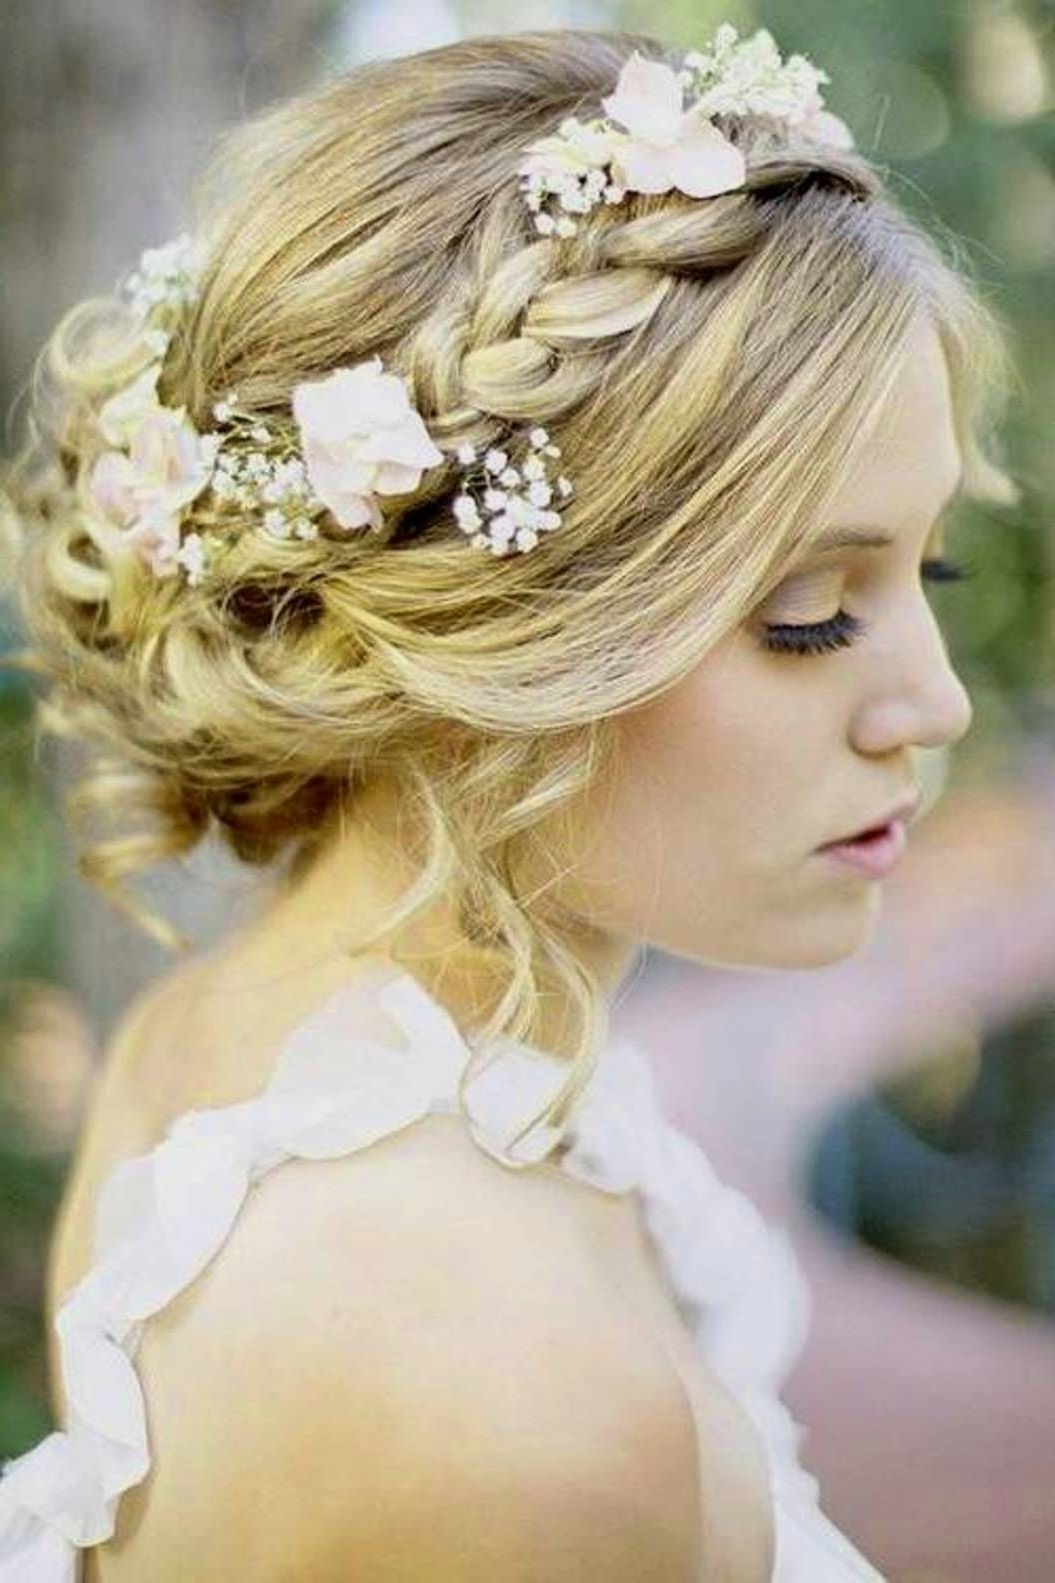 Shoulder Length Wedding Hairstyles – Hairstyles Inspiration With Regard To Latest Wedding Hairstyles For Medium Length Hair With Flowers (Gallery 14 of 15)